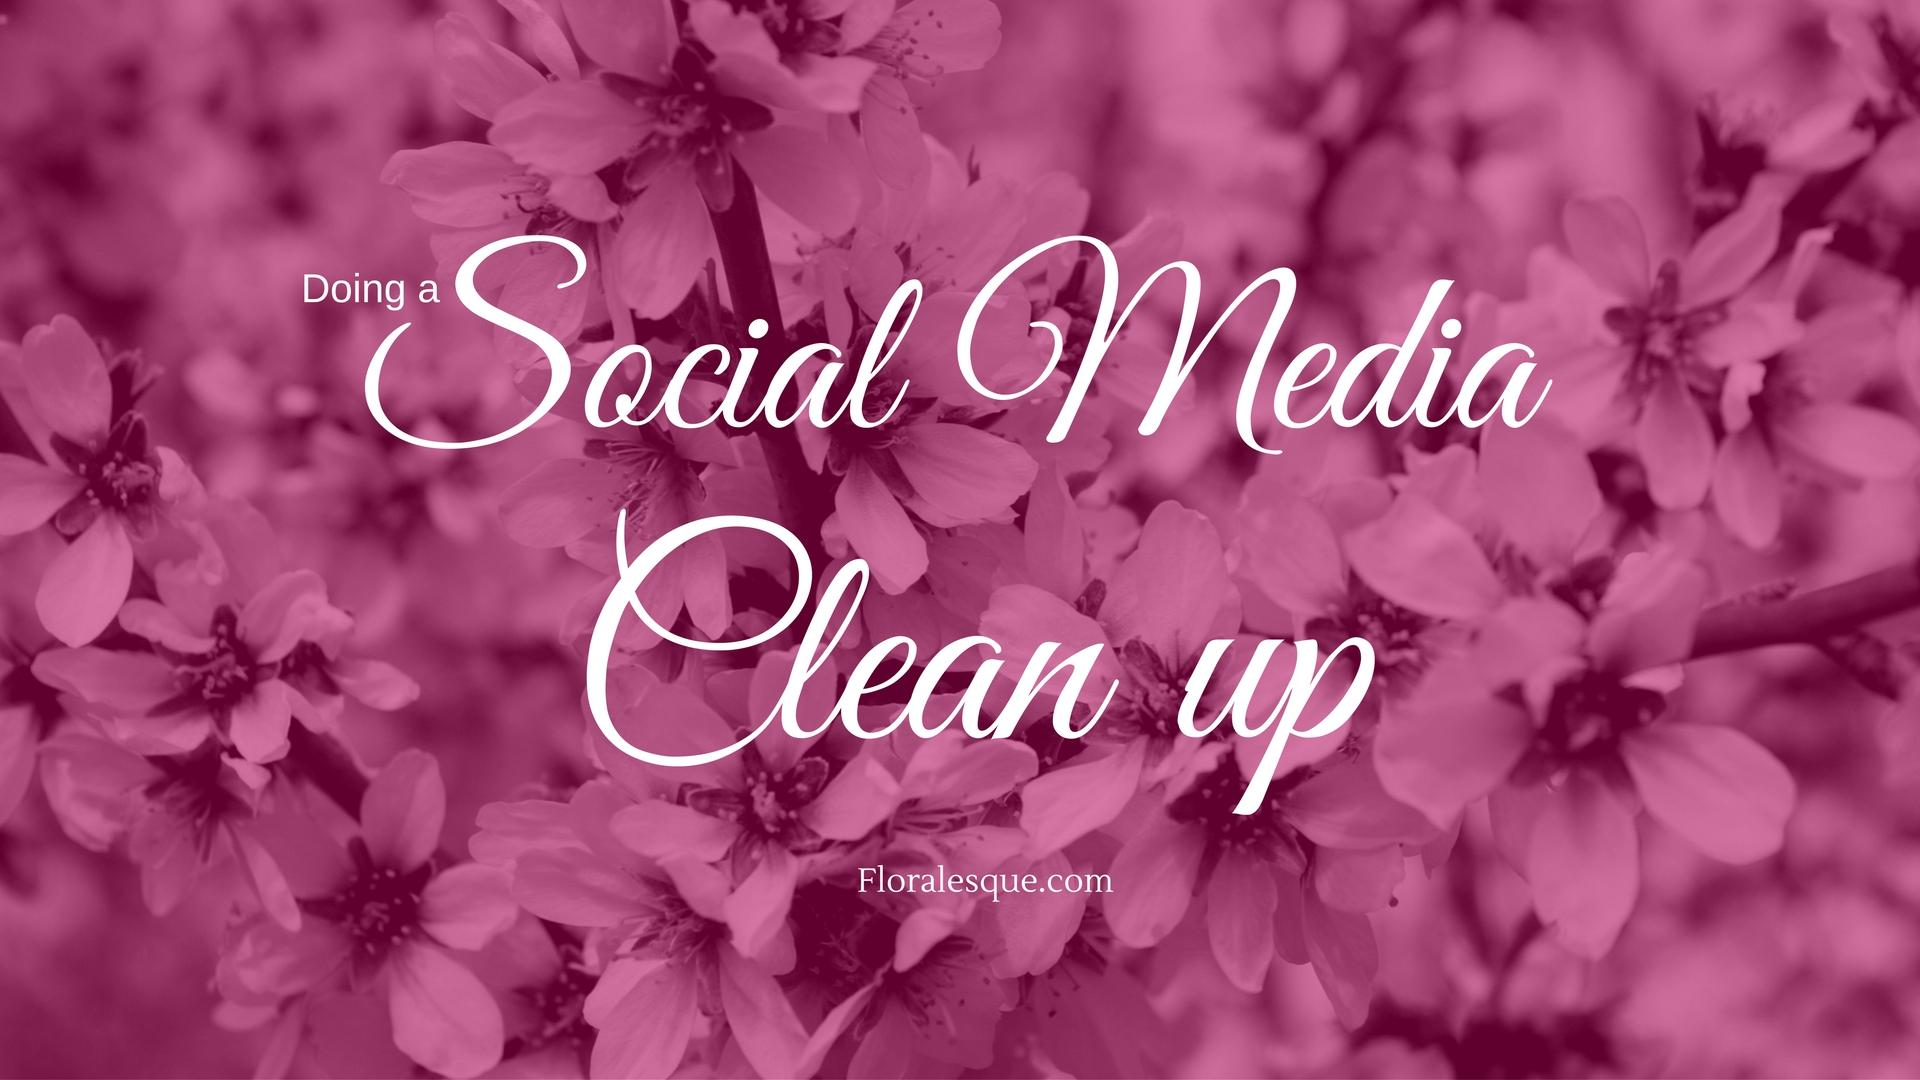 Doing a Social Media Clean Up Floralesque